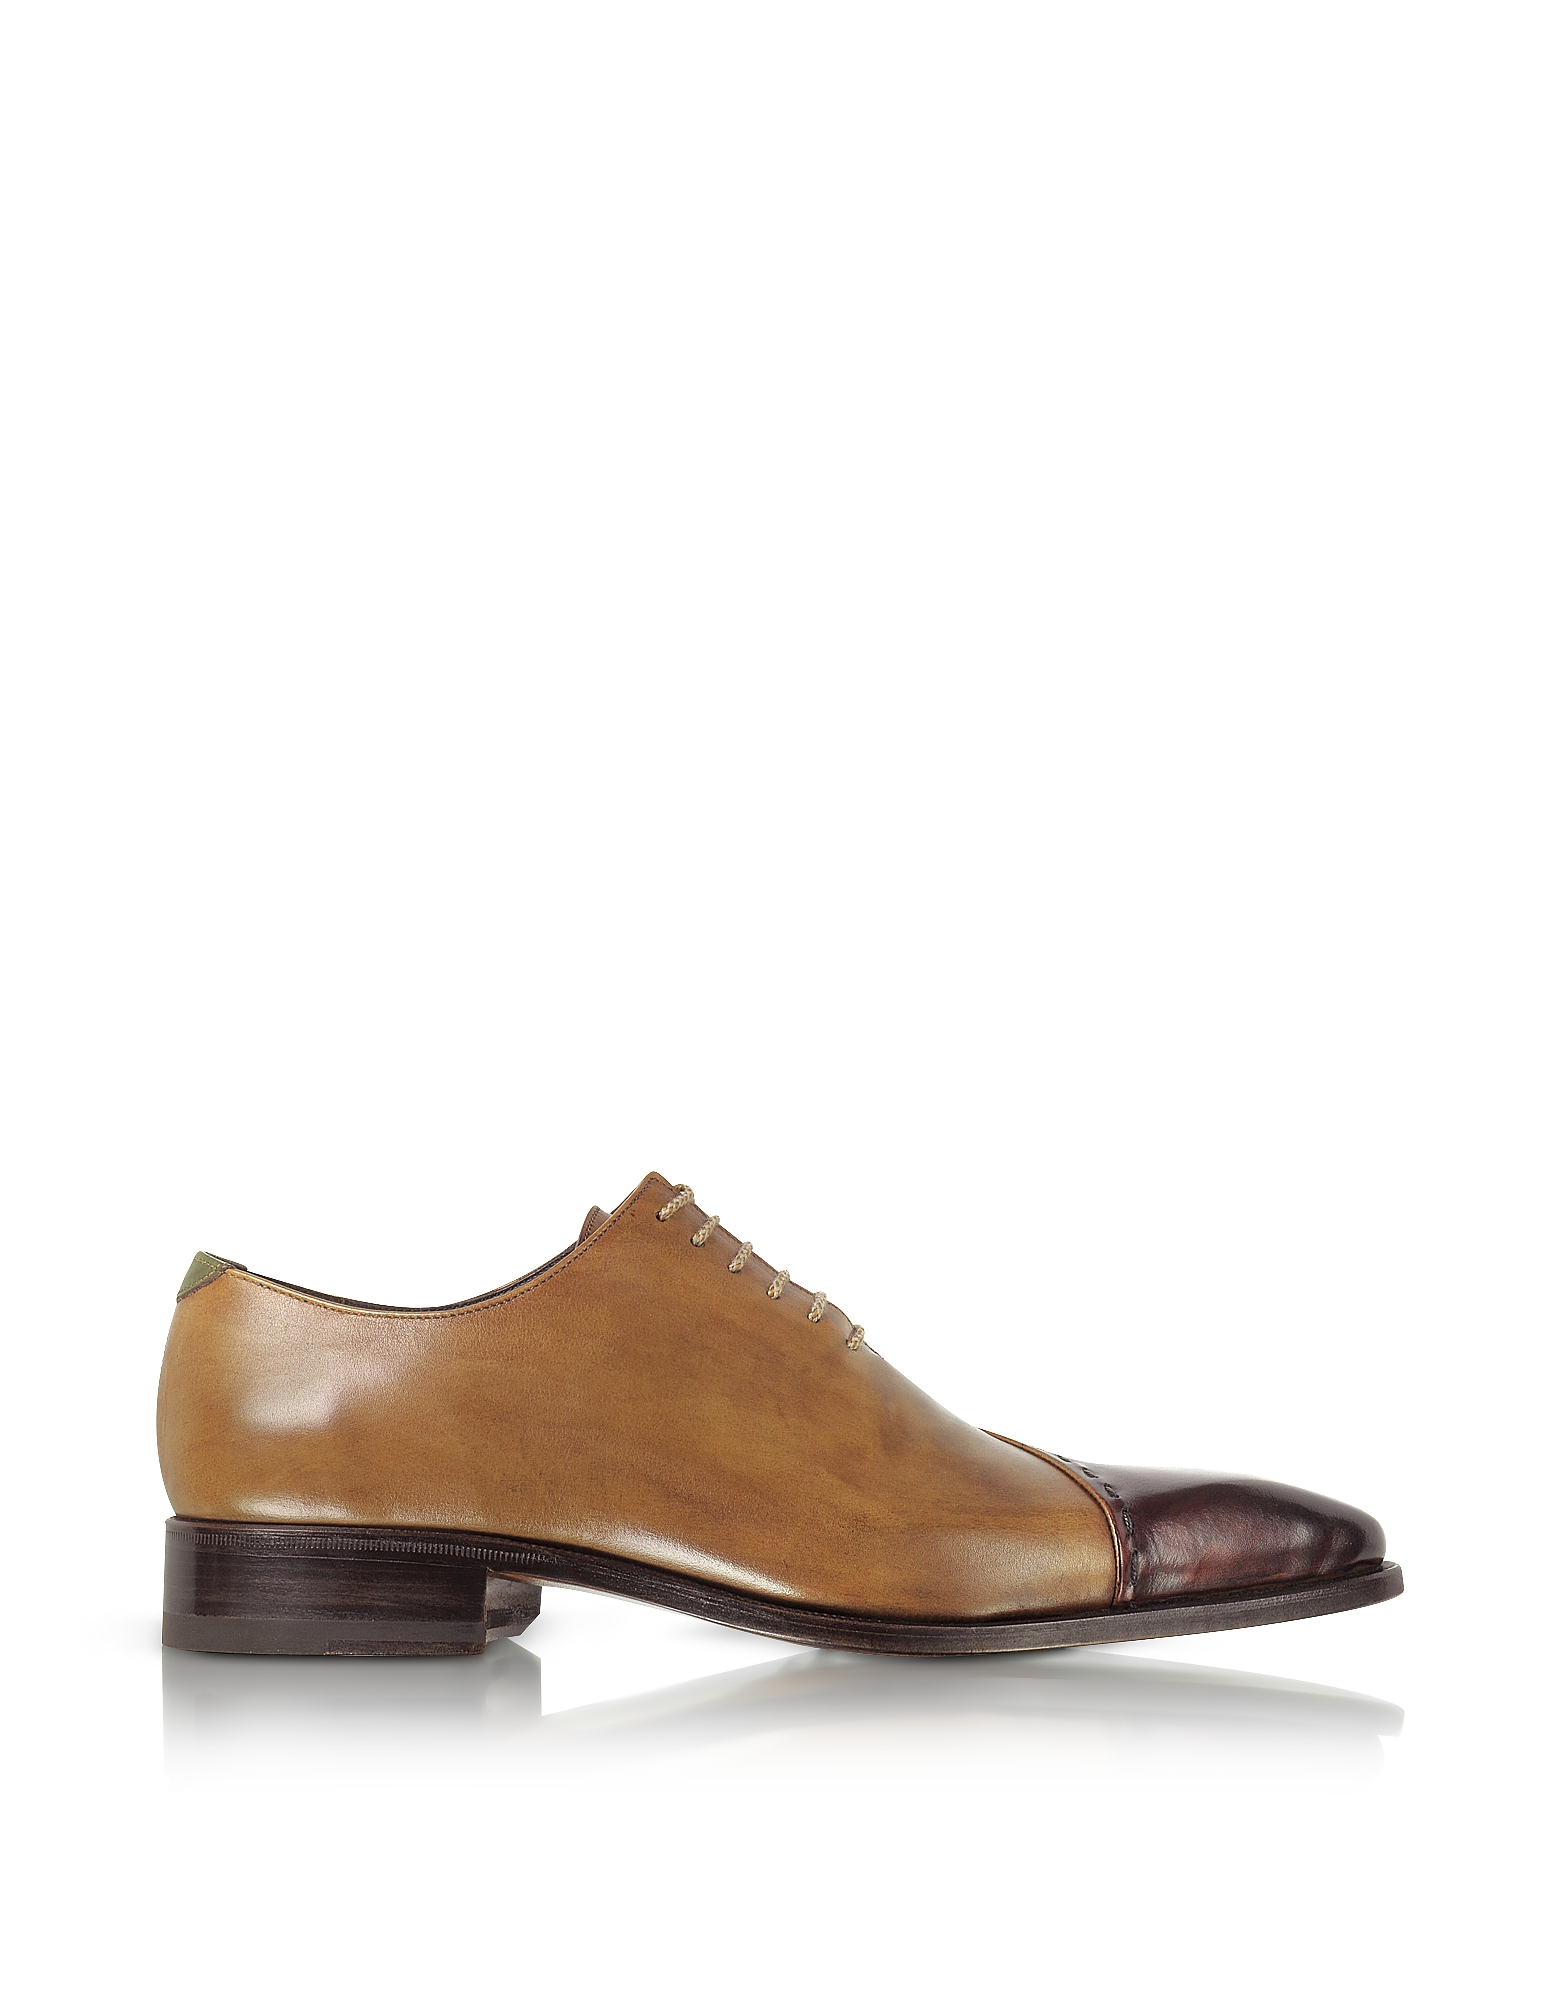 Forzieri Shoes, Brown Italian Handcrafted Leather Cap Toe Dress Shoes